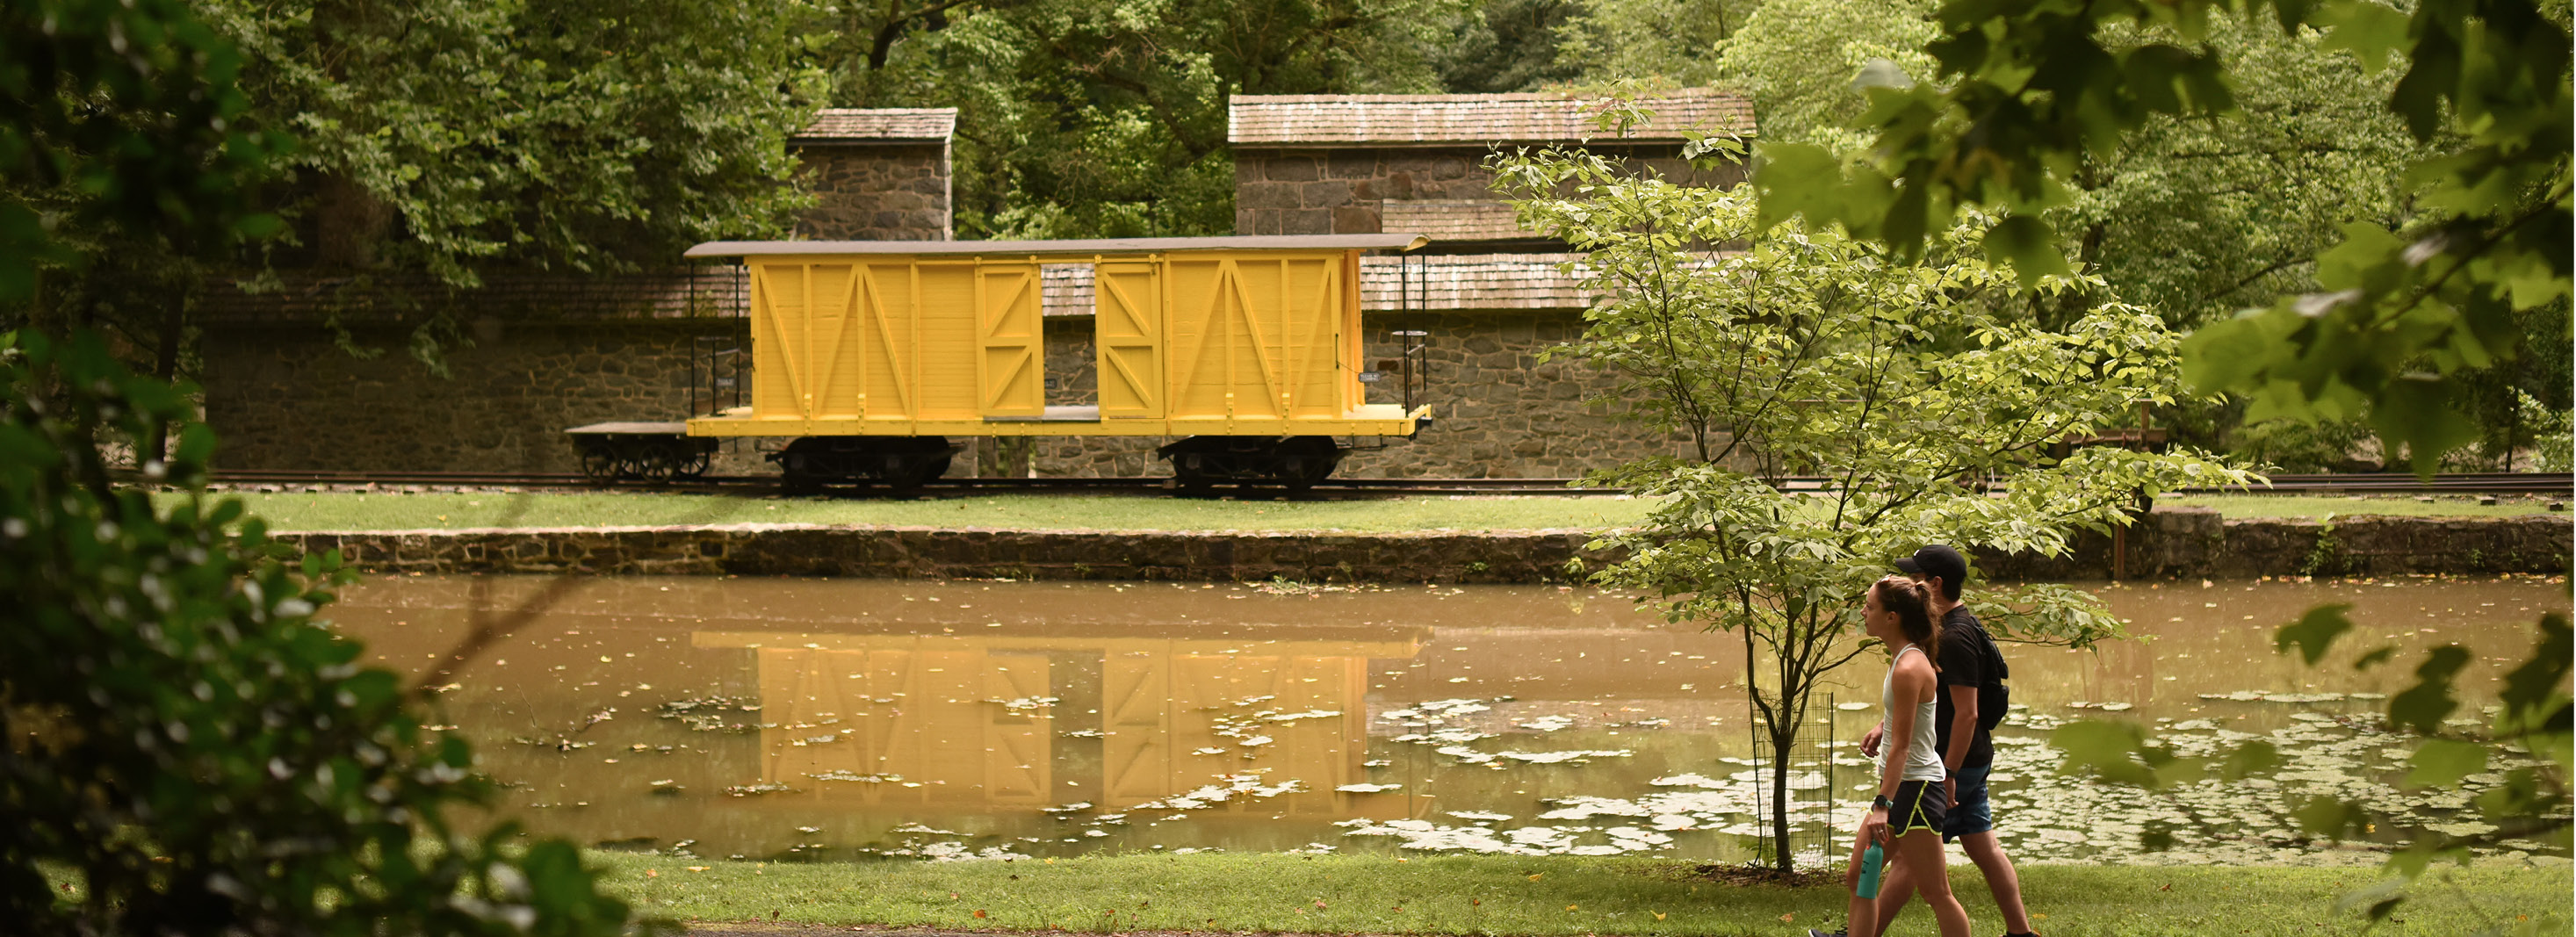 hagley's iconic boxcar next to the millrace